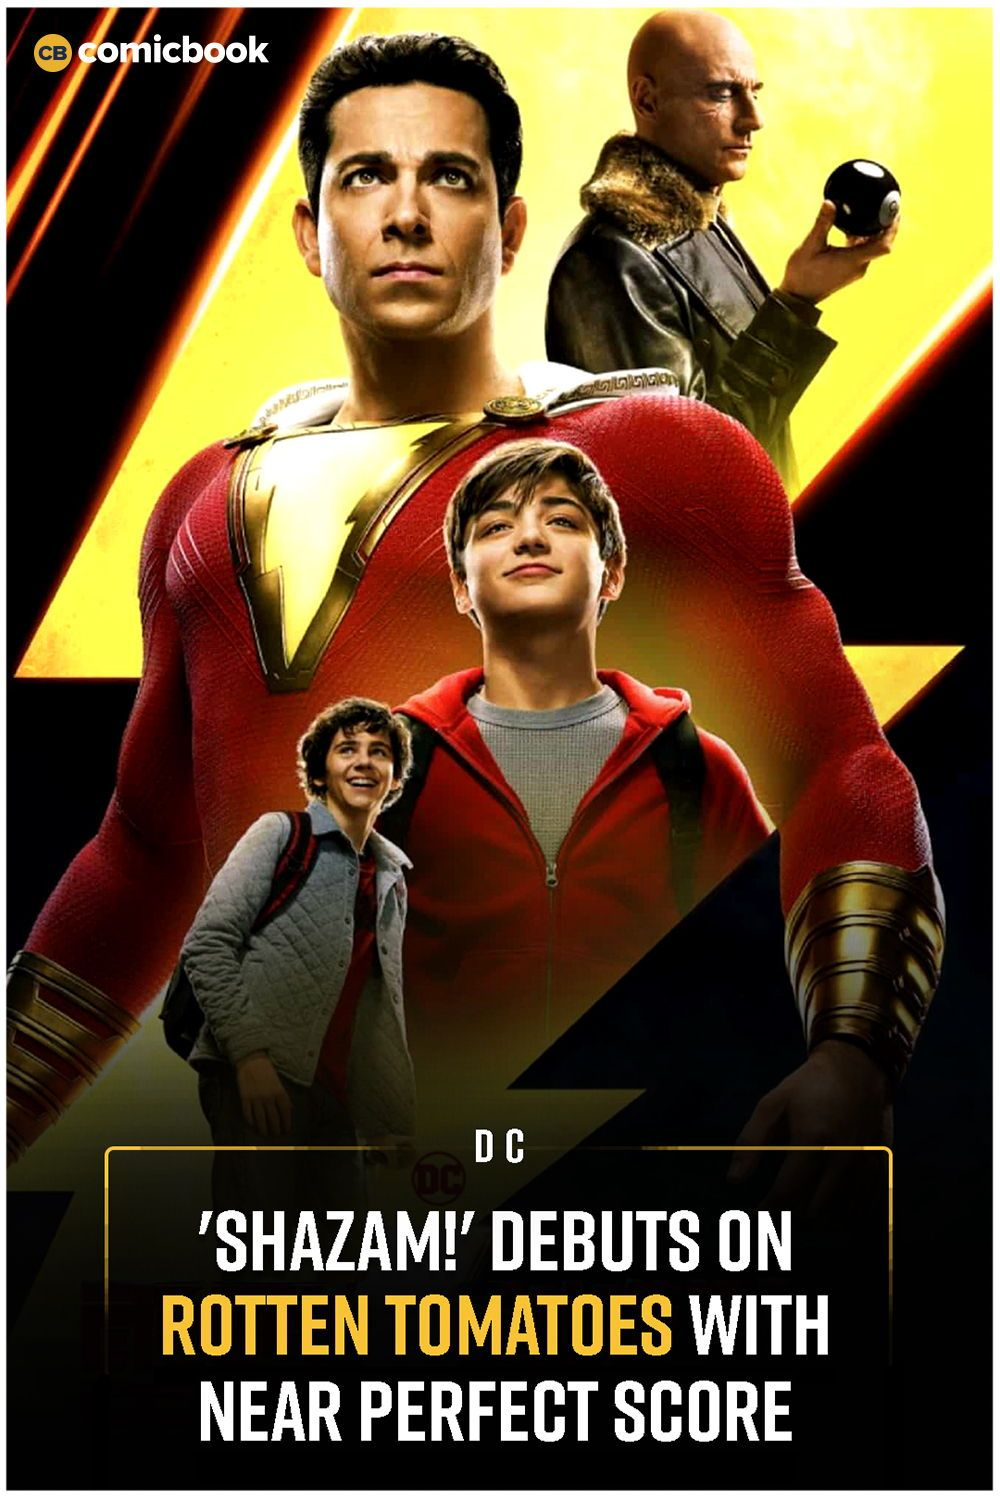 Shazam!' Debuts on Rotten Tomatoes With Near Perfect Score